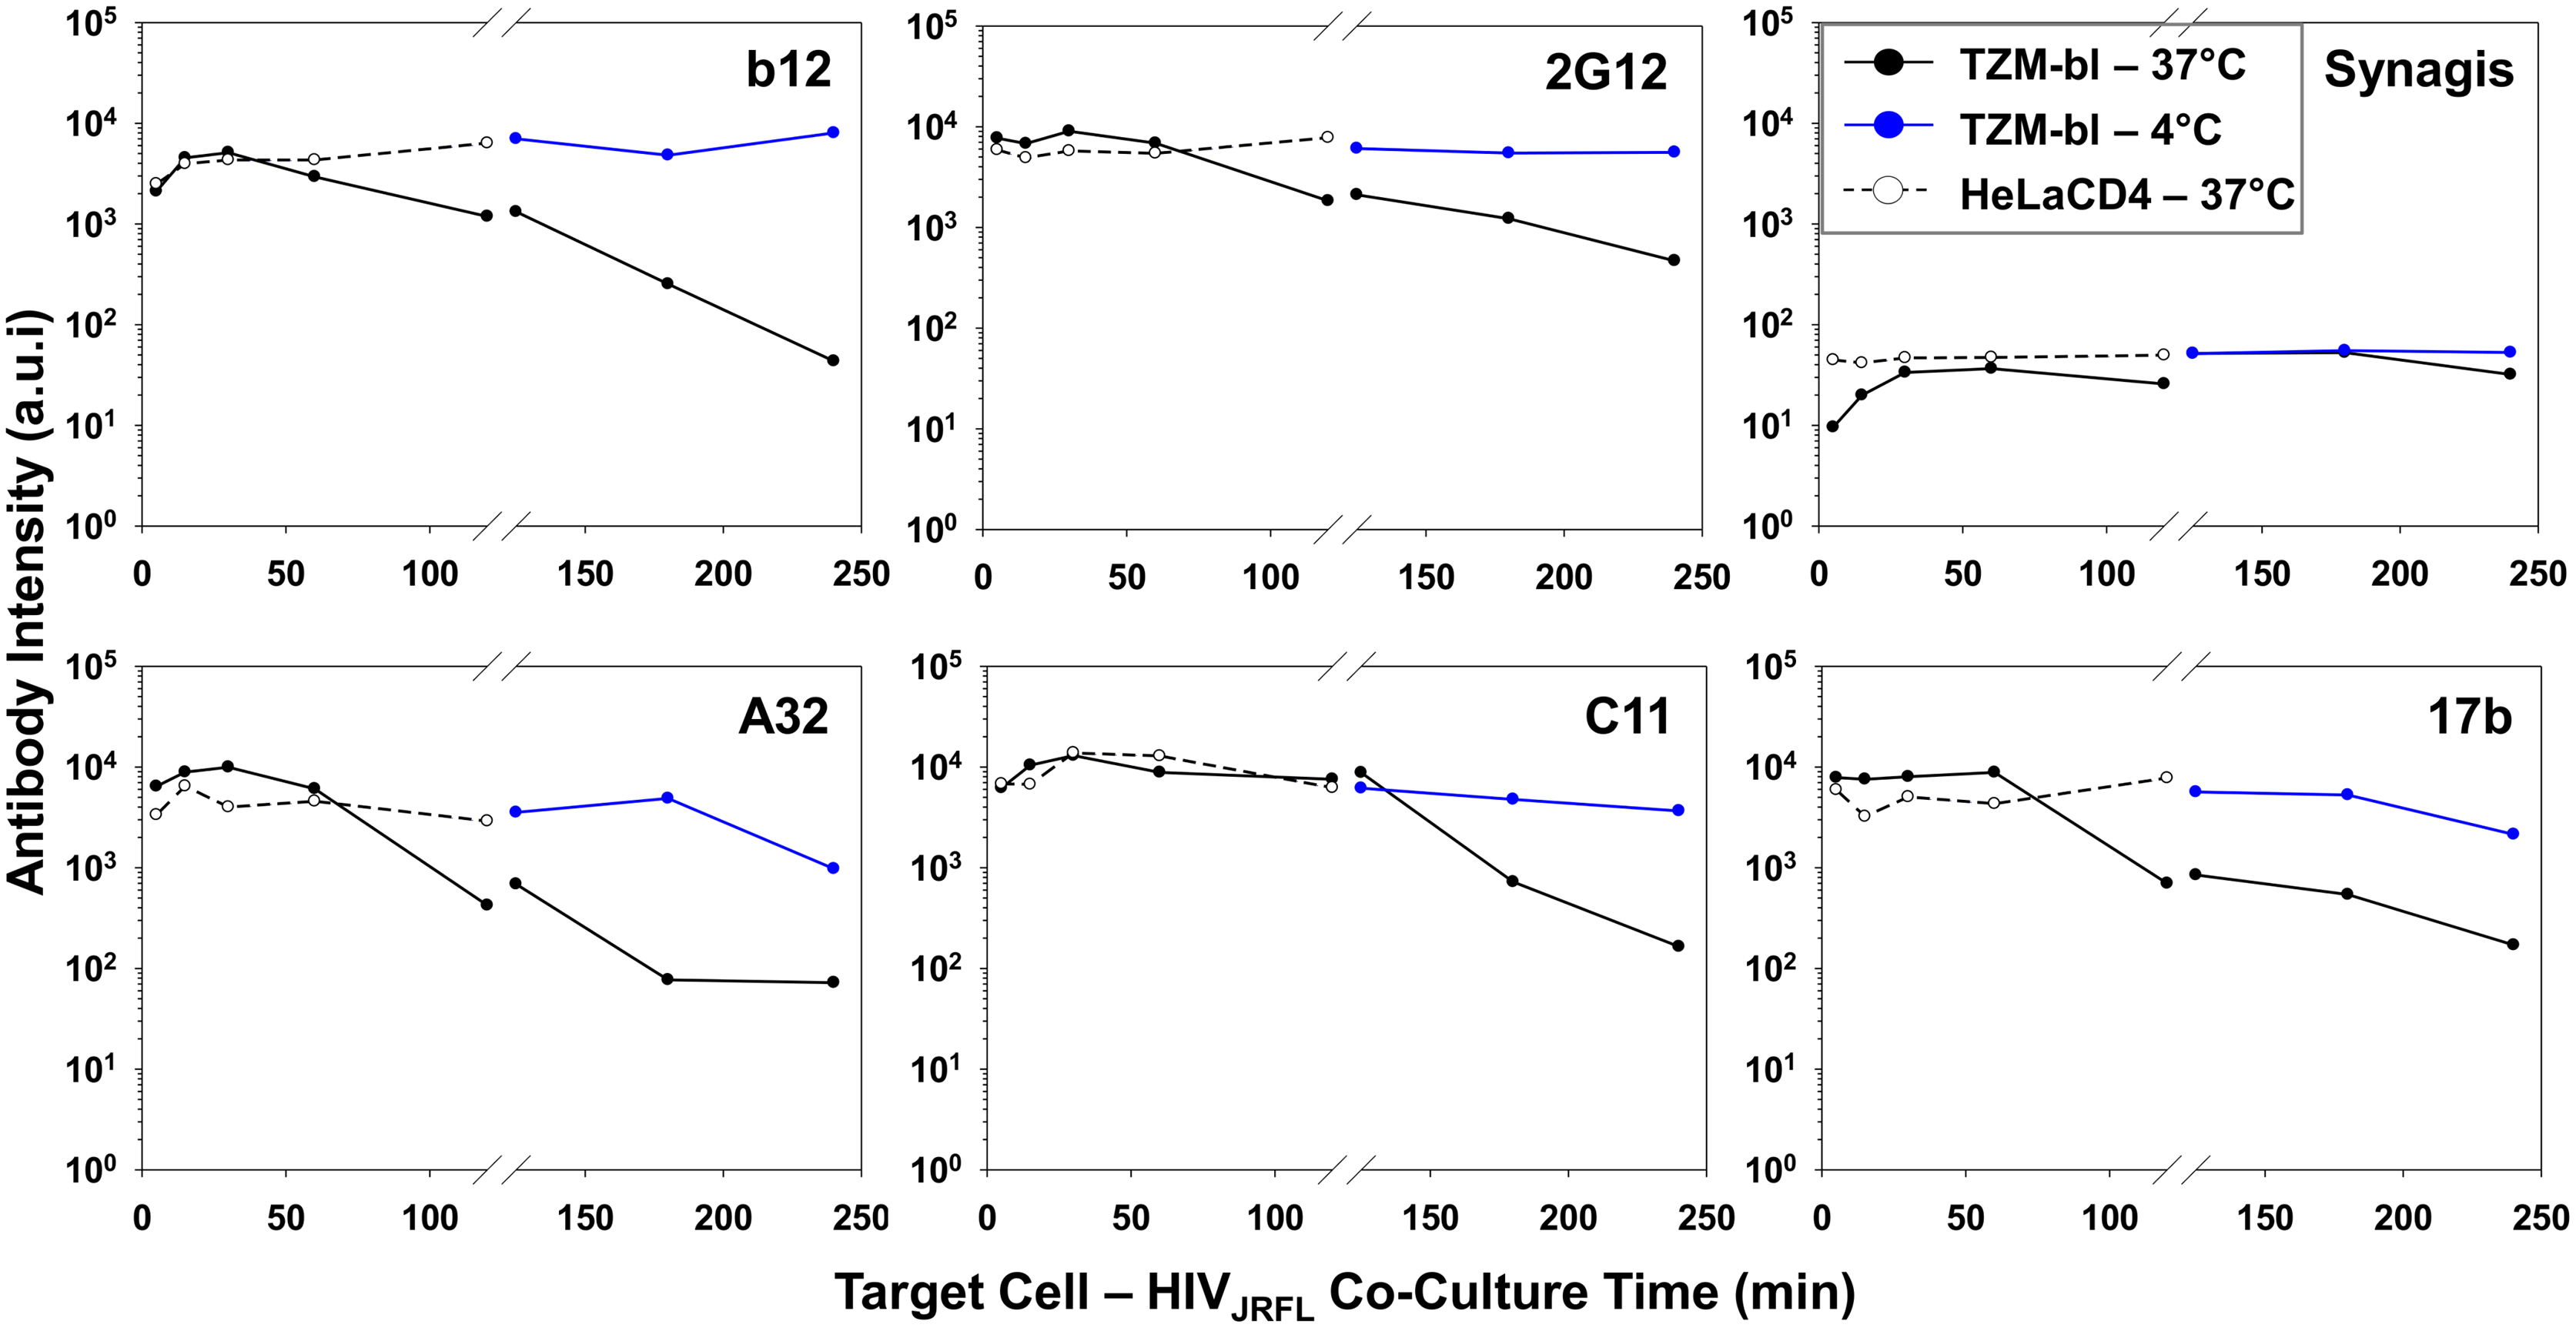 Influence of co-receptor expression, temperature and time on the exposure of gp120 epitopes on cell-bound HIV<sub>JRFL</sub> virions.